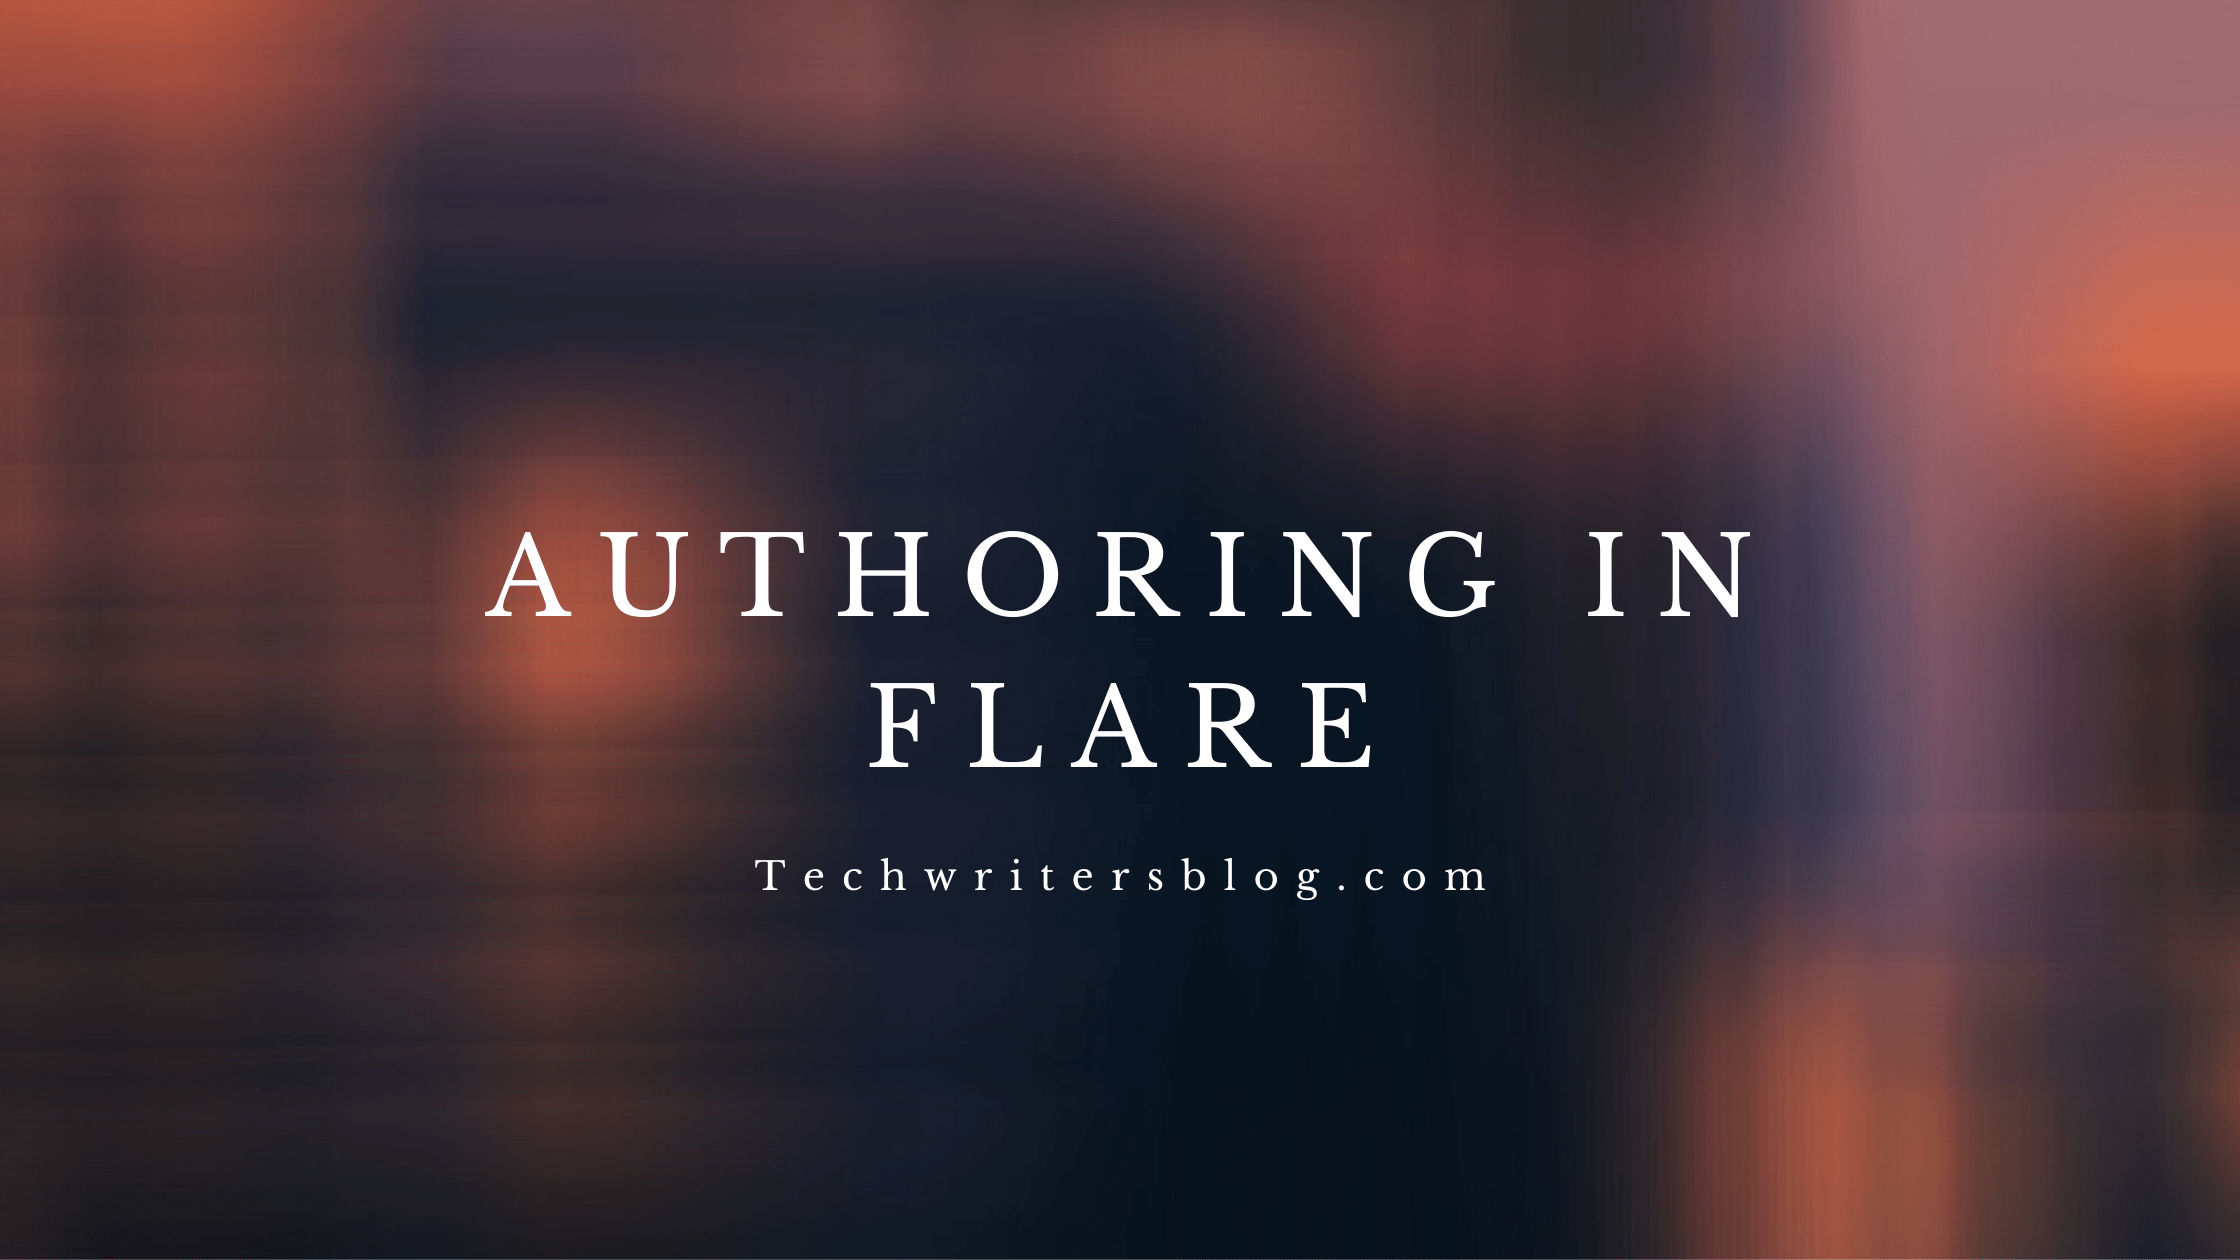 Authoring in Flare